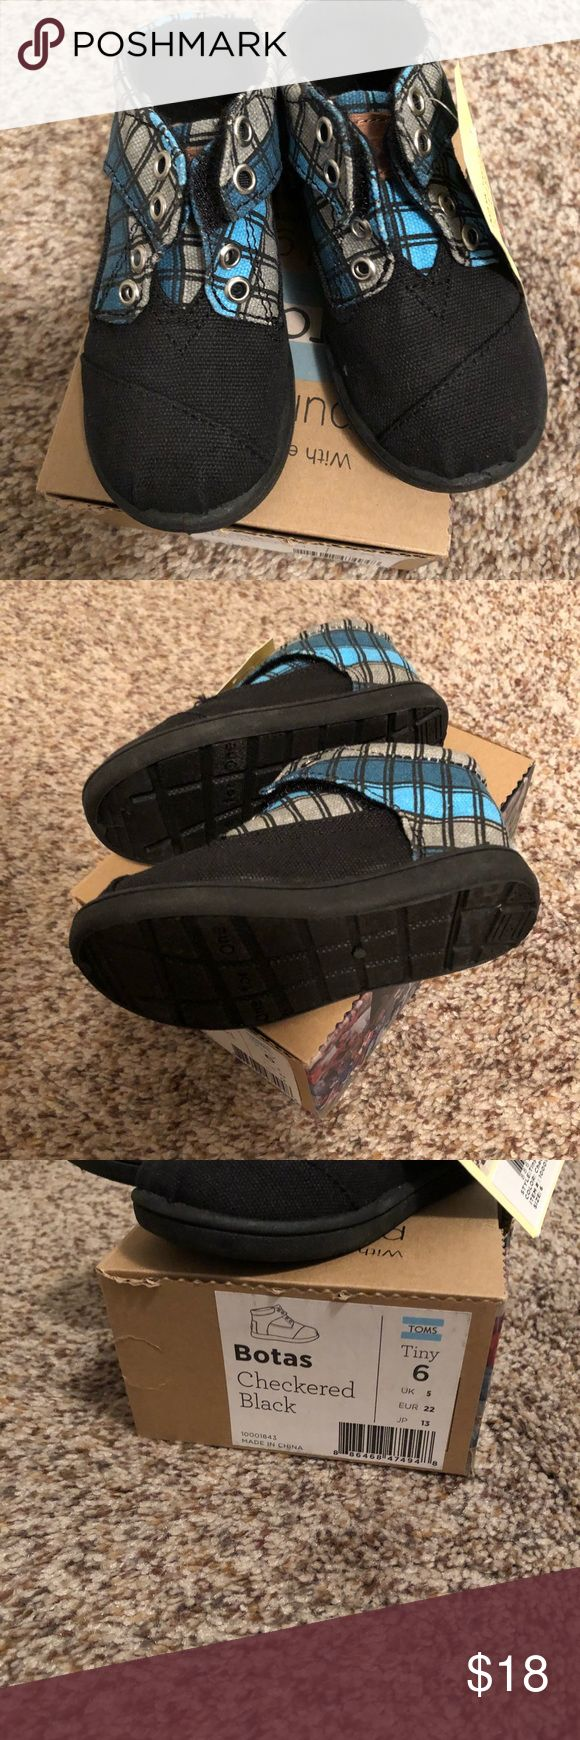 Brand new with tags Toms tiny size 6 Toms brand  Style: botas Size 6 tiny Color: checkered black Toms Shoes Sneakers